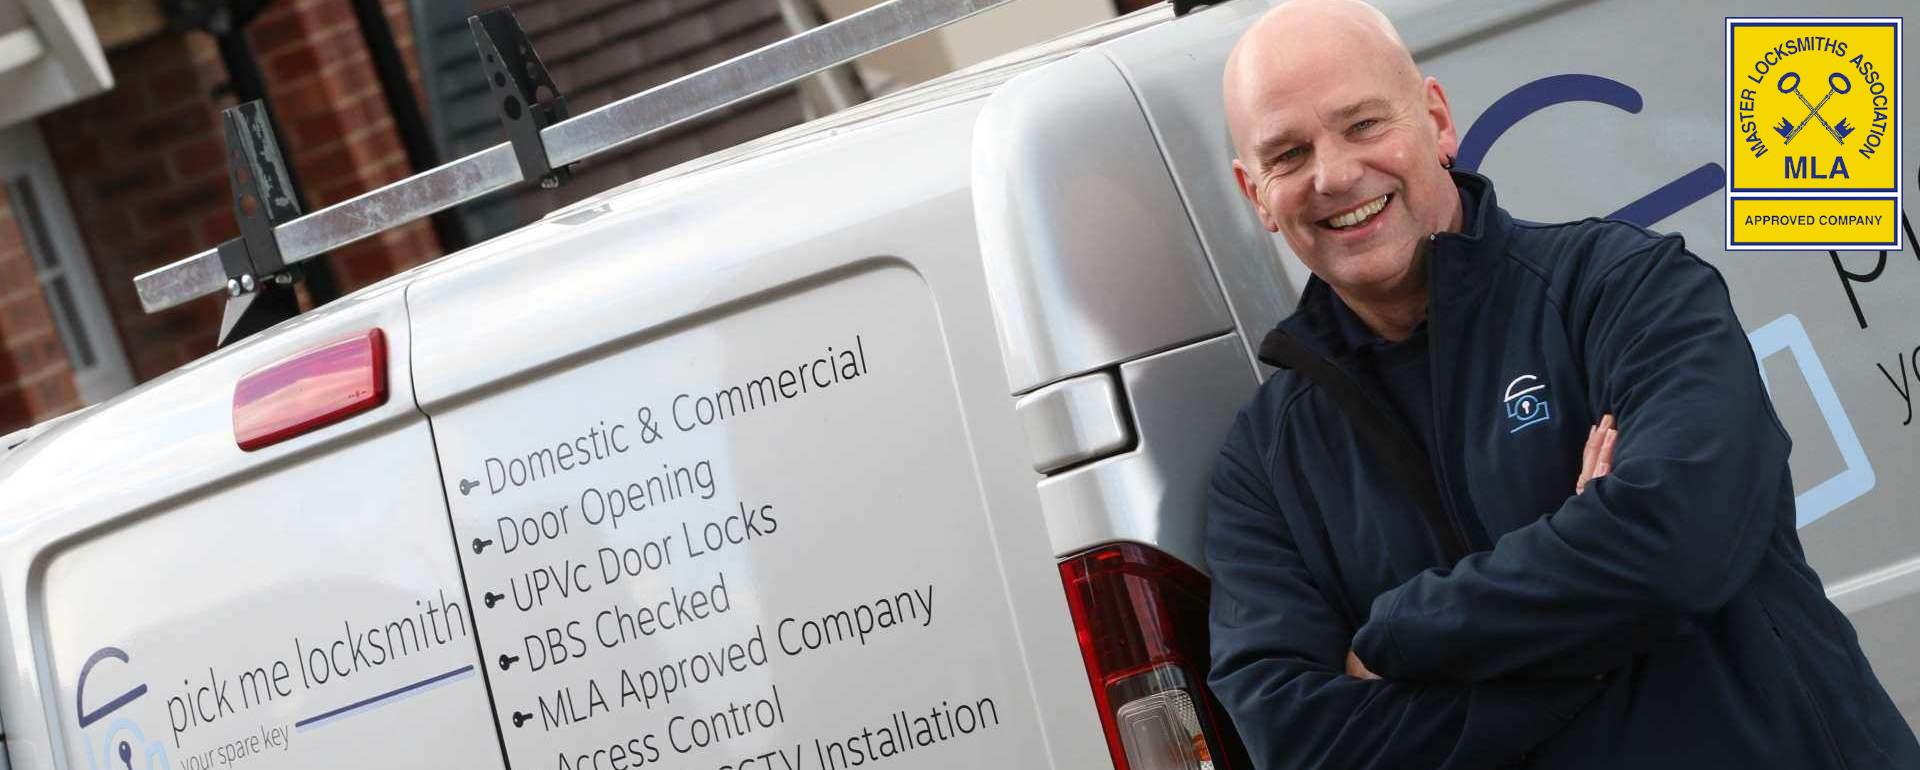 Locksmith Lichfield - Steve Brown Locksmith in Lichfield by his Locksmiths van